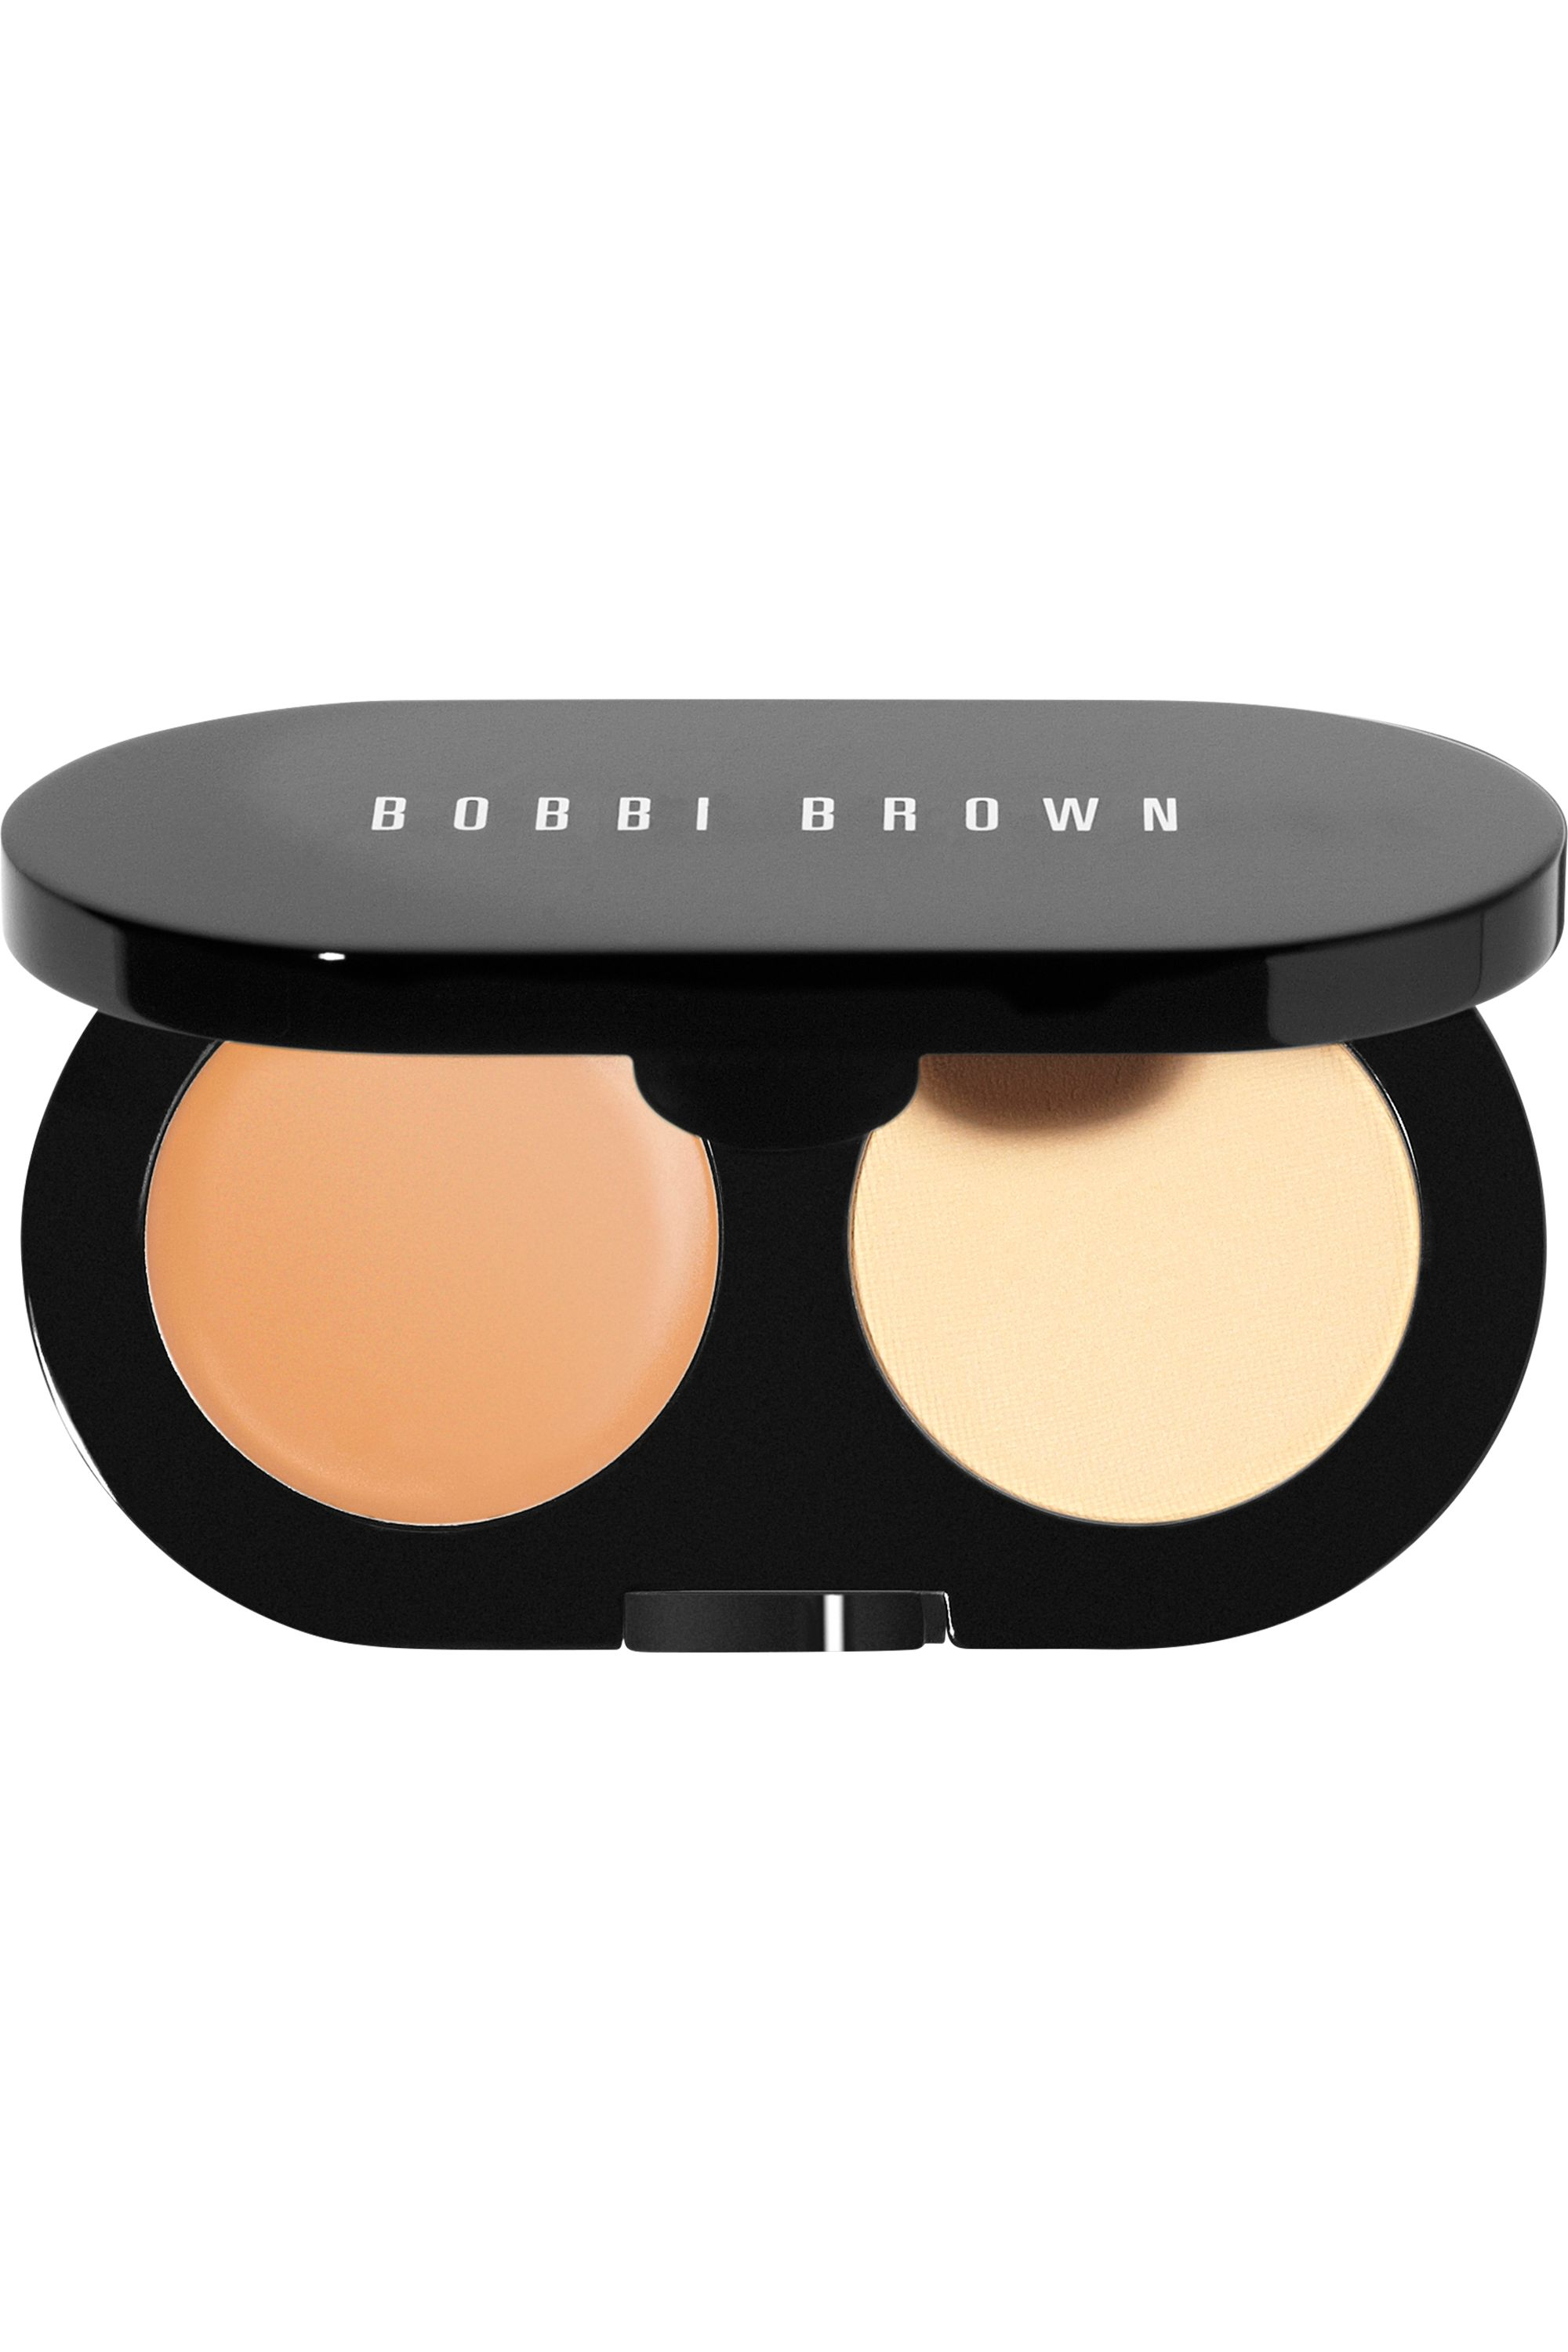 Blissim : Bobbi Brown - Kit anti-cernes Creamy Concealer Kit - Warm Beige